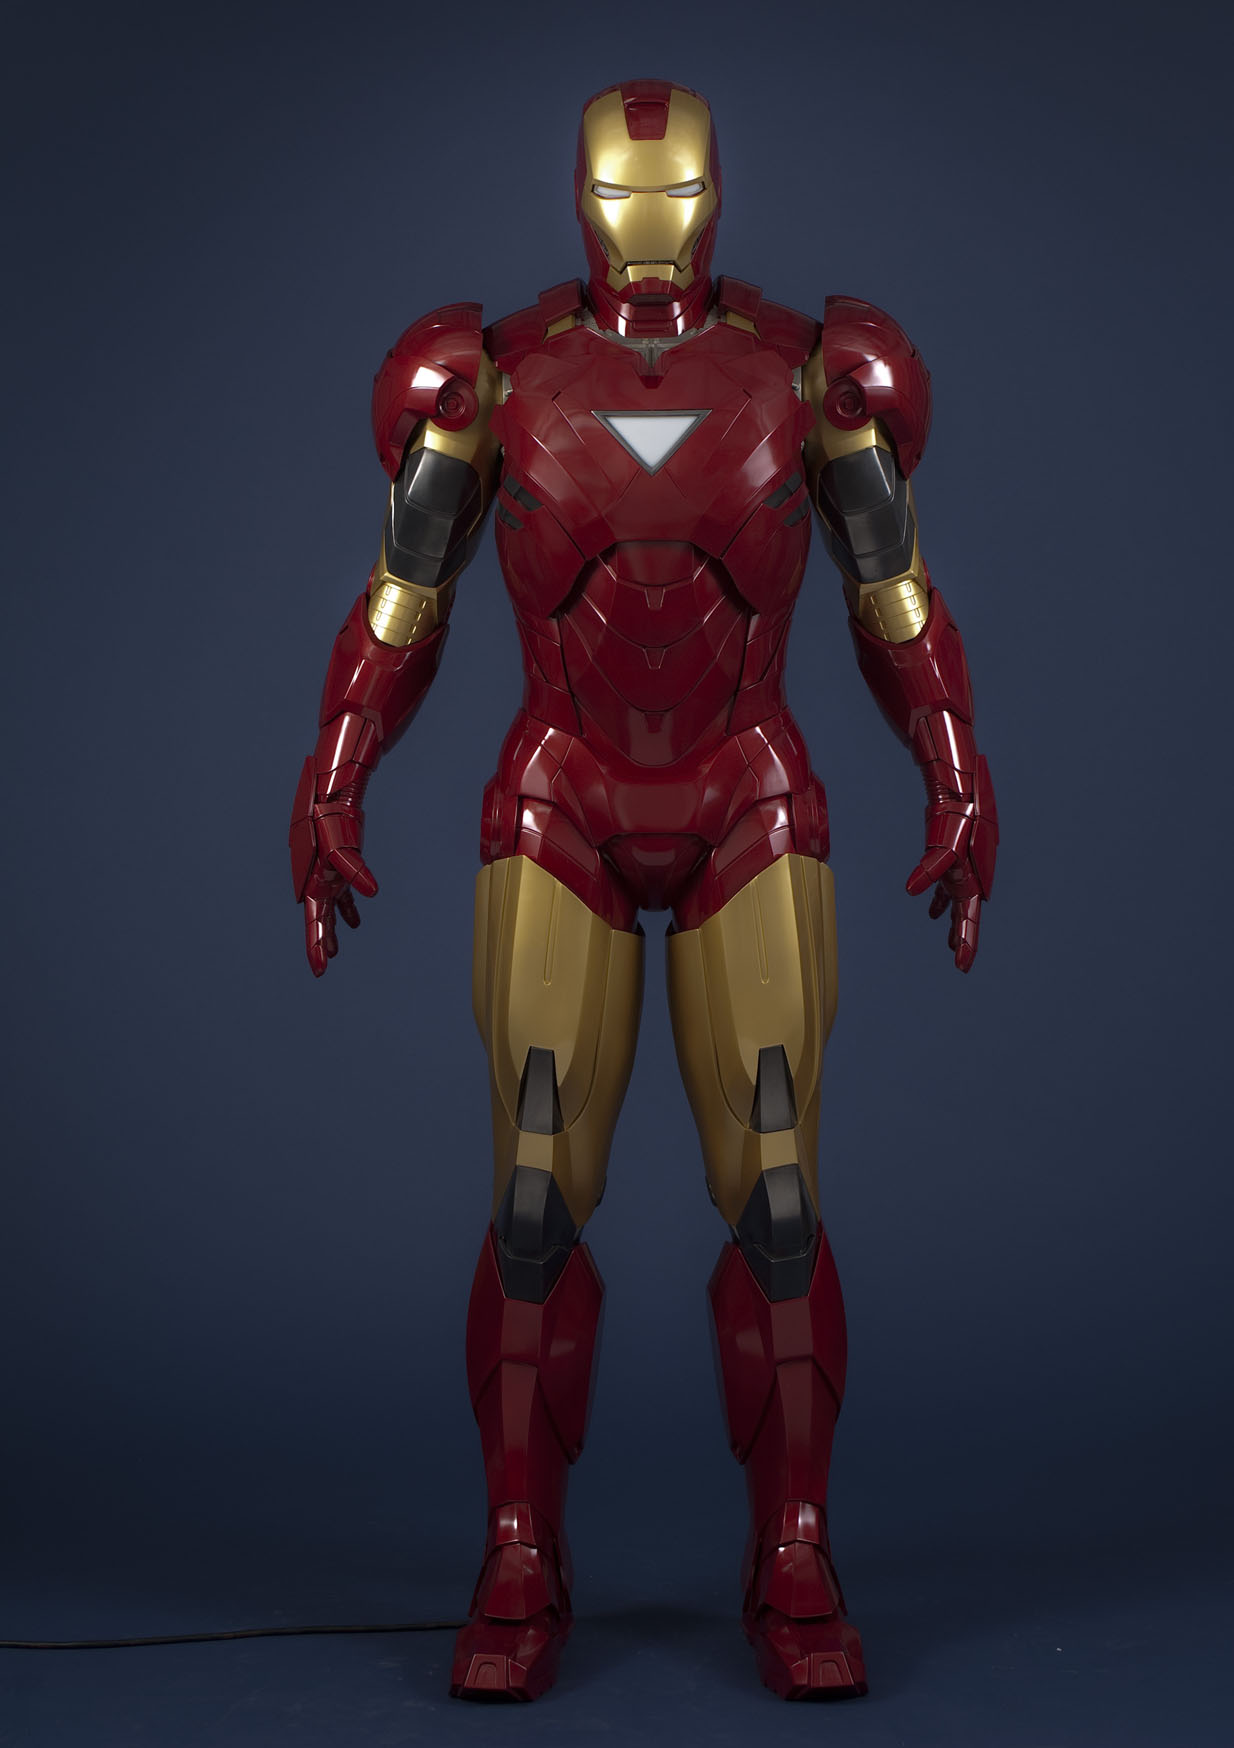 Iron Man's figure at Madame Tussauds London